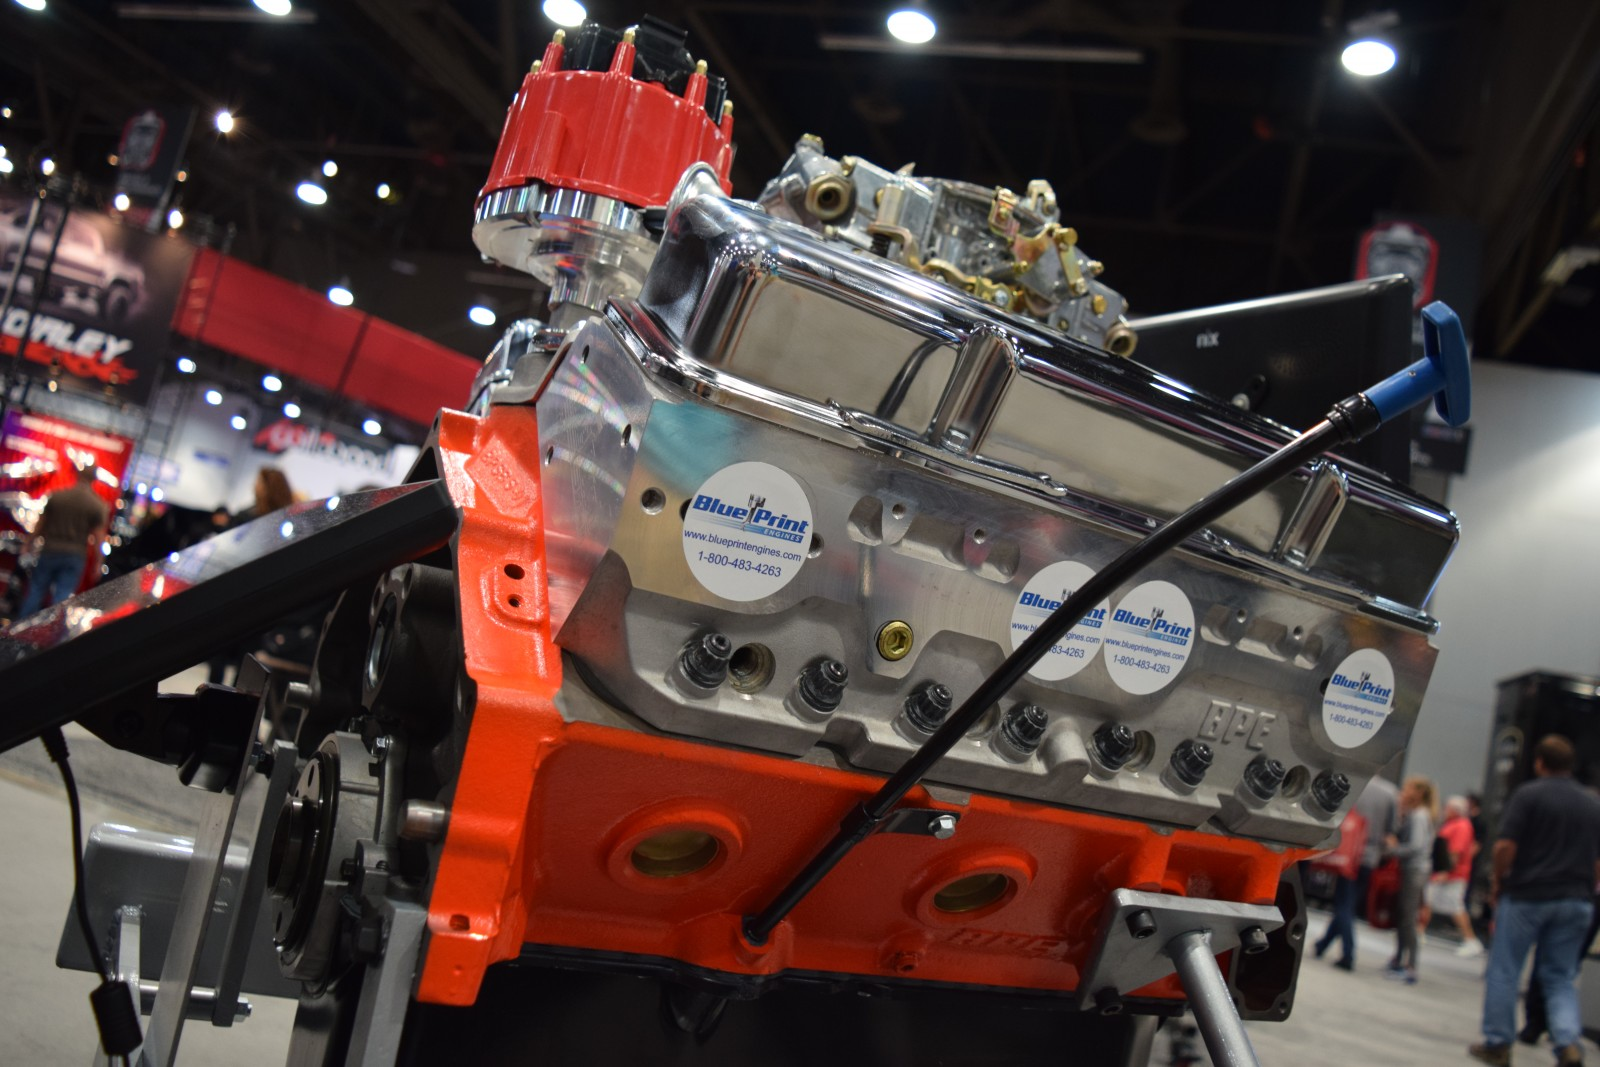 Blueprint engines to showcase new chevrolet 400 engine line at blueprint engines to showcase new chevrolet 400 engine line at sema 2015 onallcylinders malvernweather Choice Image